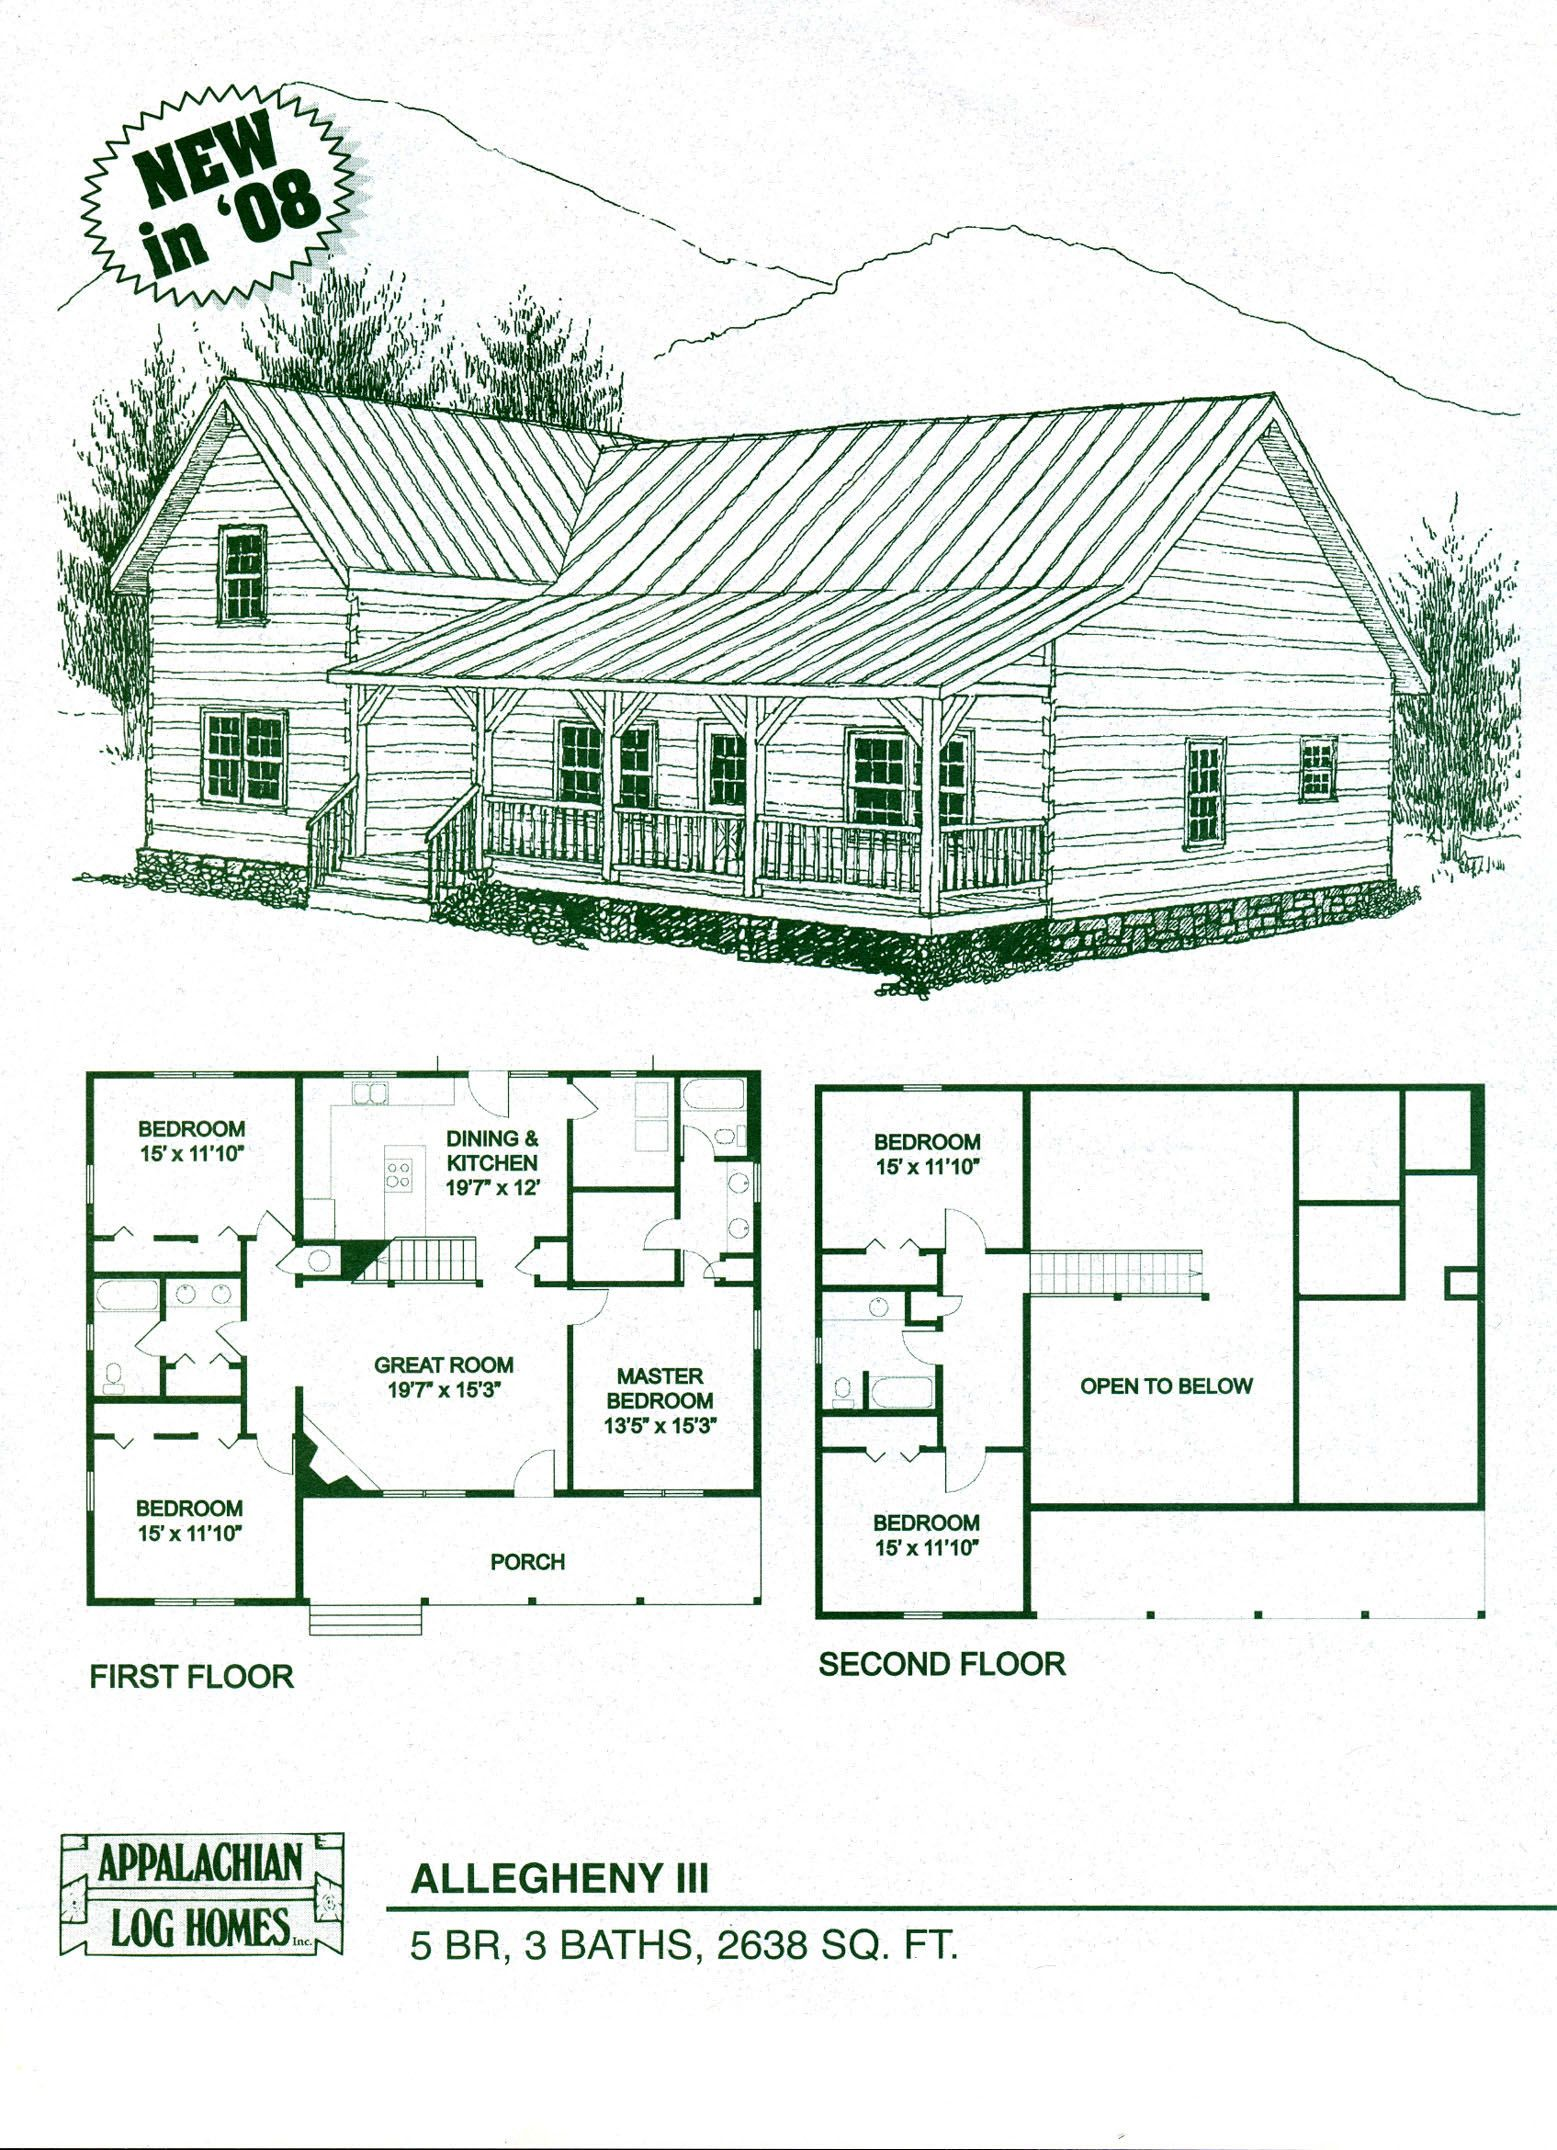 Log home floor plans log cabin kits appalachian log for Log lodges floor plans